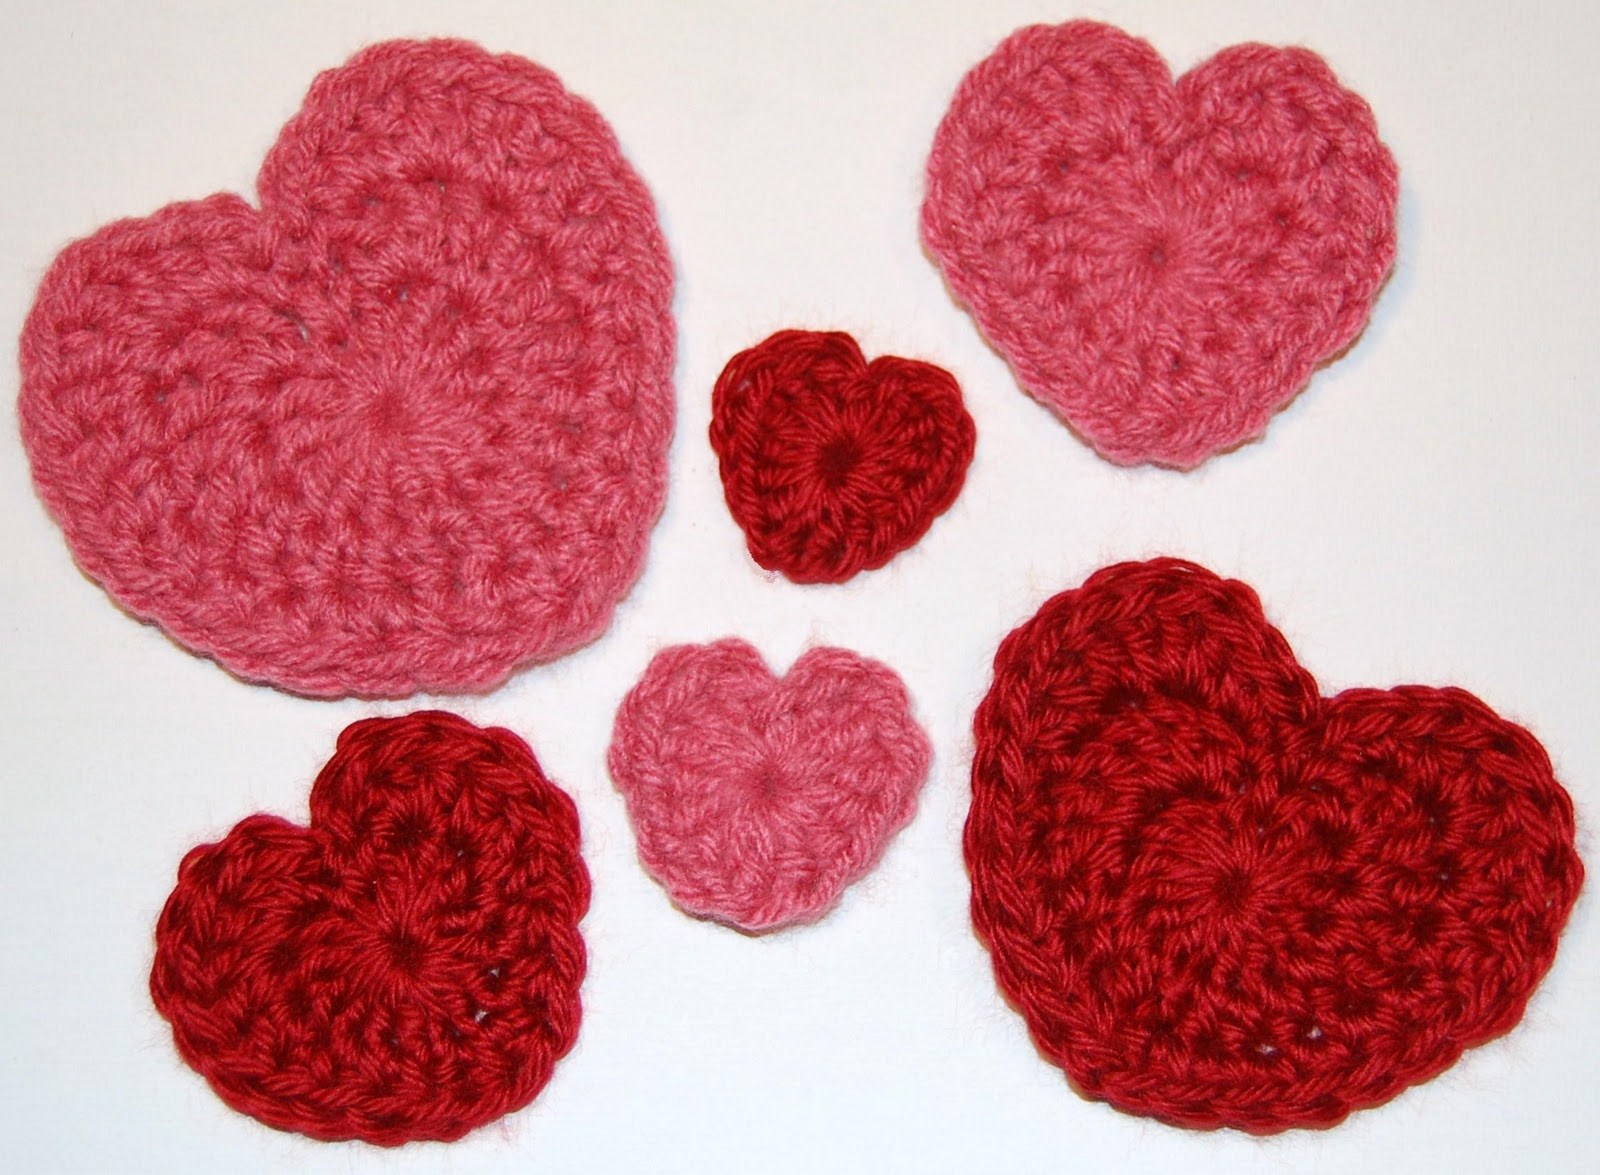 Crochet Valentine : Valentines Day Heart Crochet Patterns - Petals to Picots